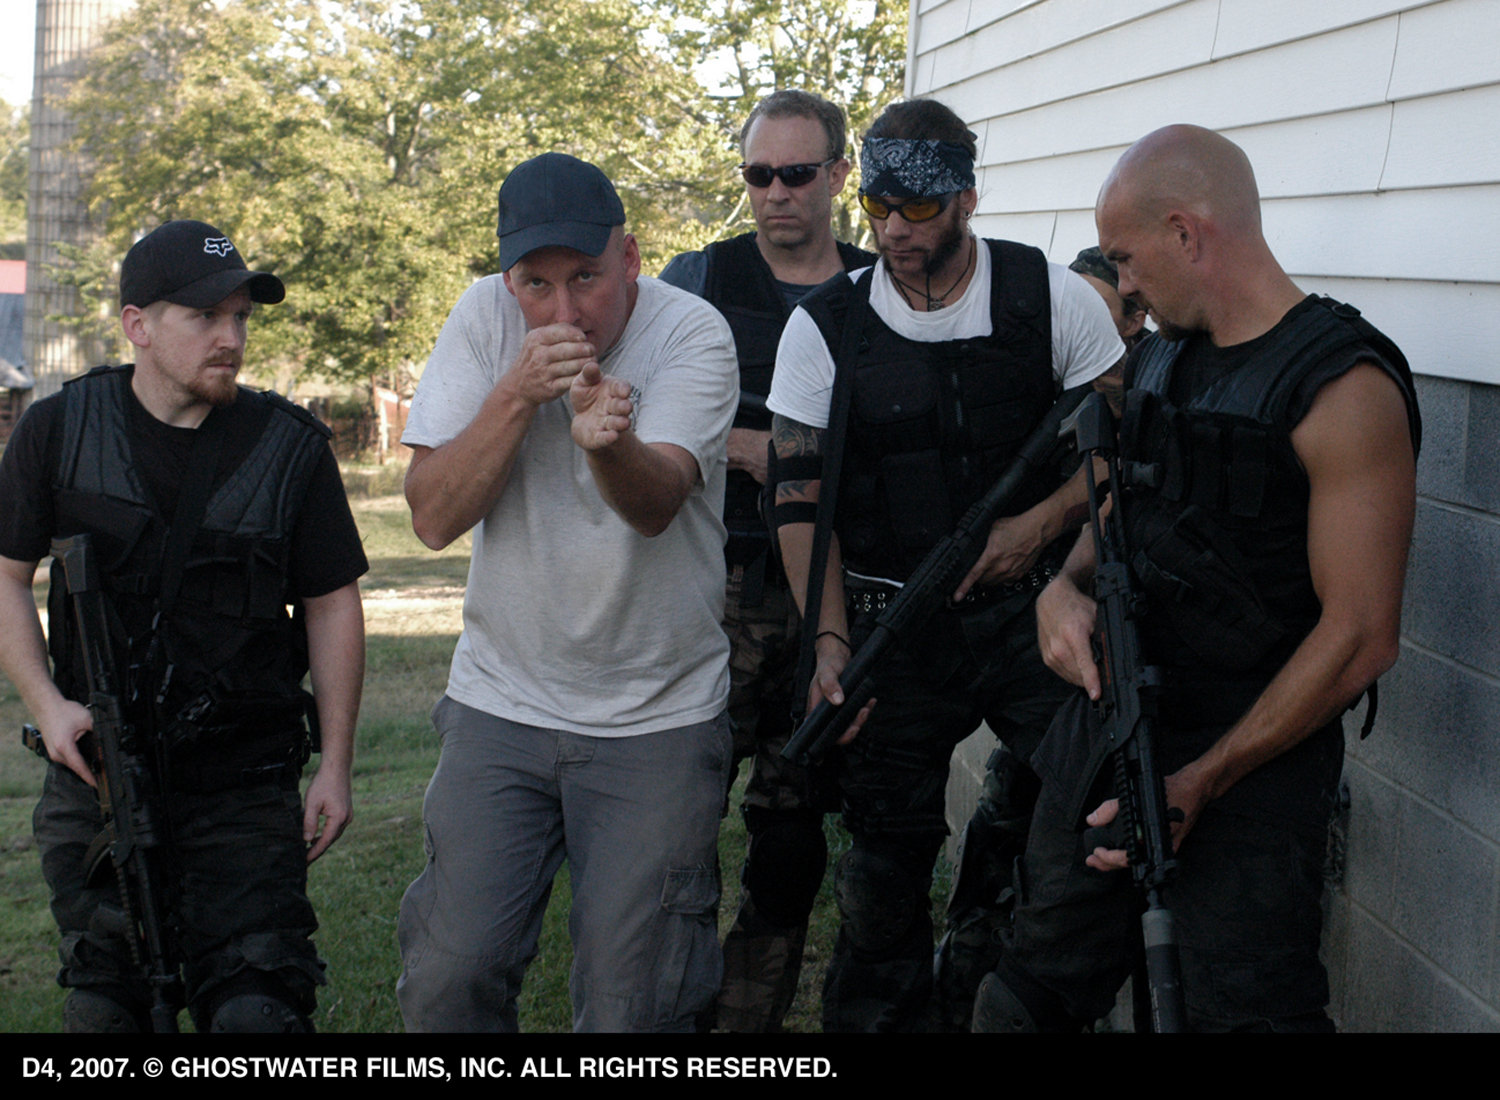 Michael Henderson instructs the cast on weapons handling and team movement during pre-production training.